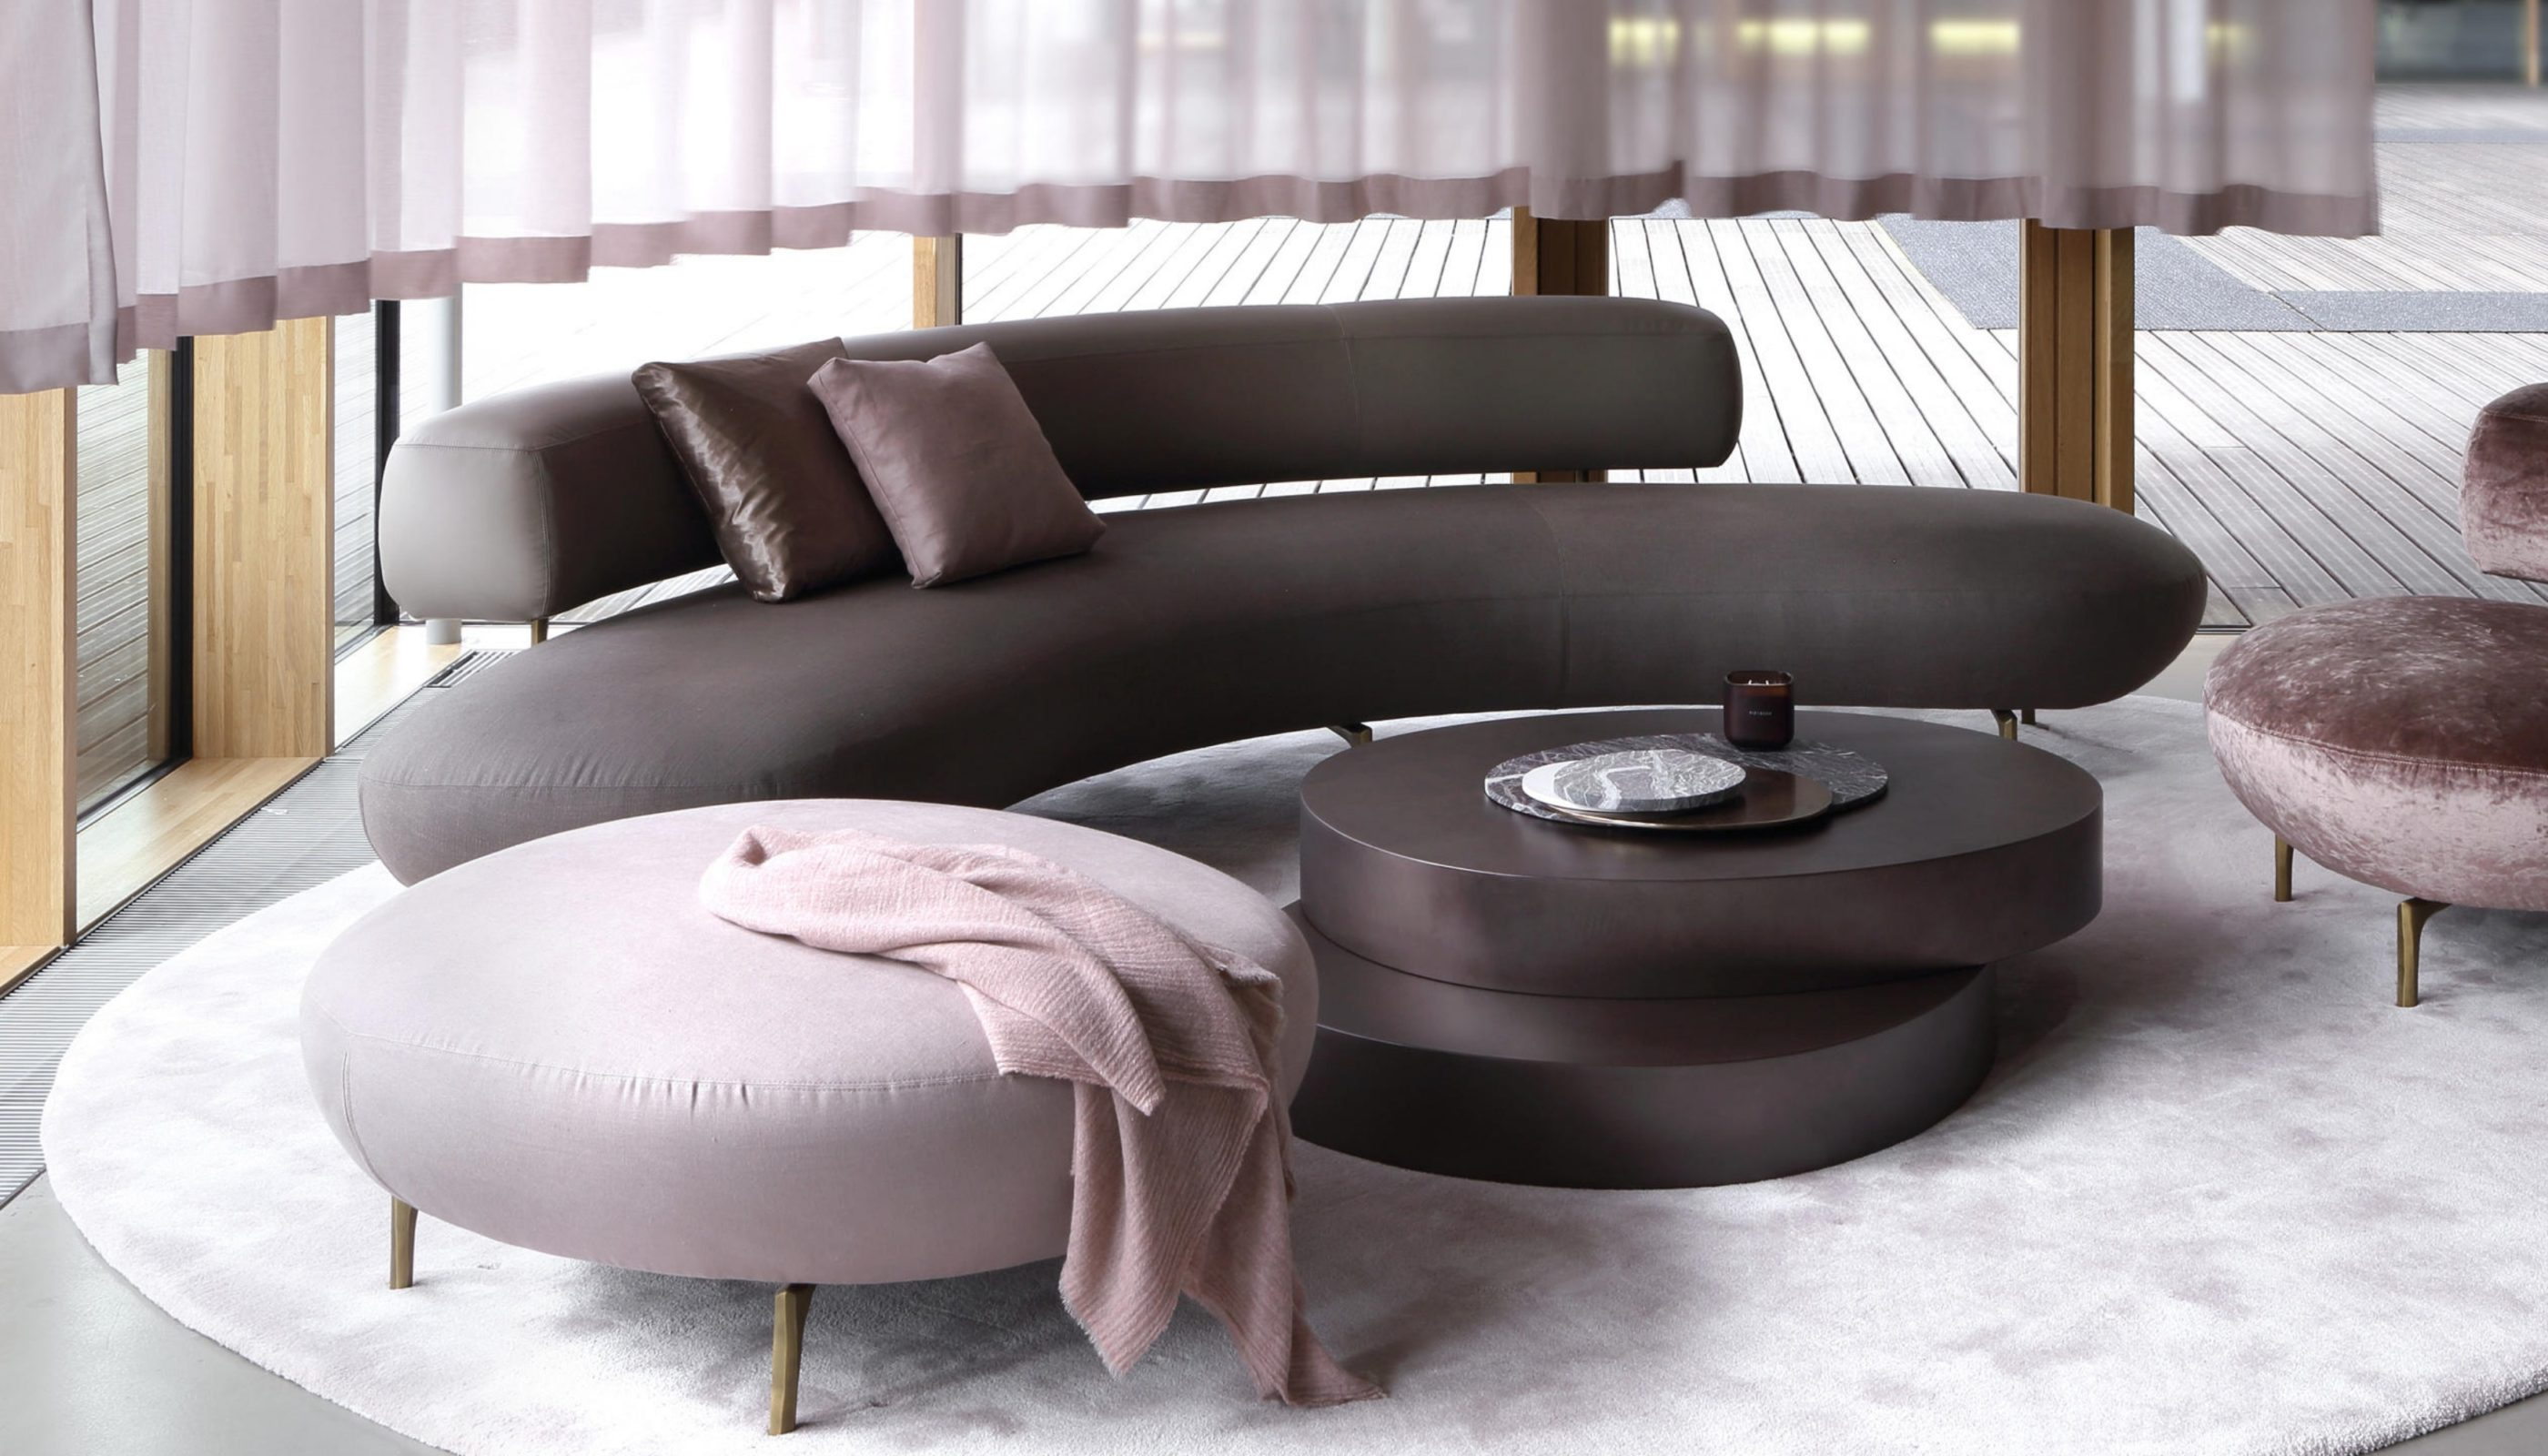 Curved Sofas You'll Love - Ella Sofa by Piet Boon